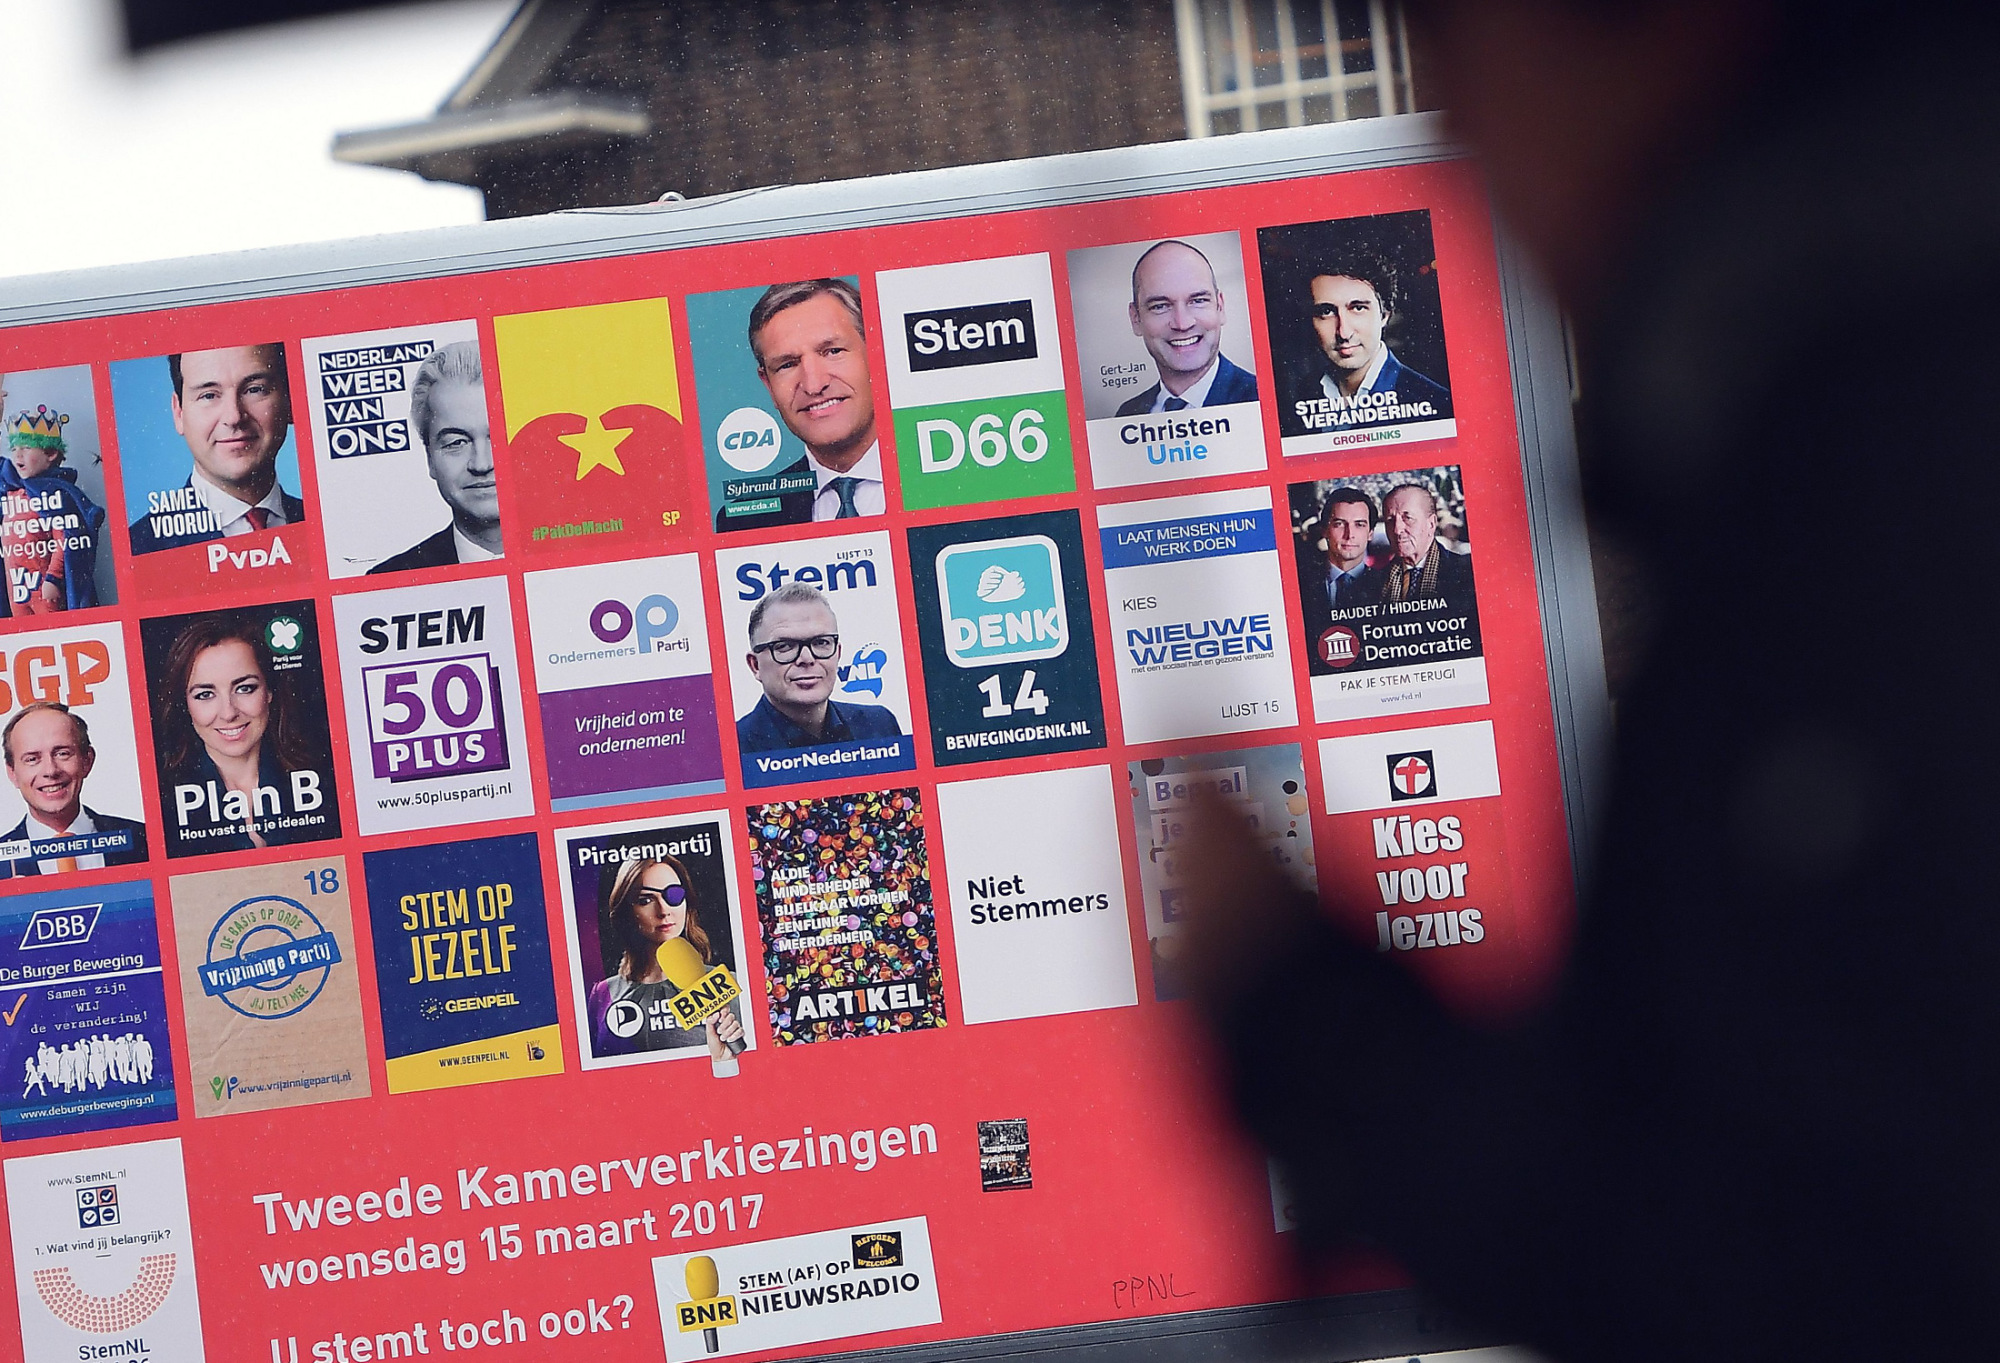 Dutch Election: A Who's Who Guide to the Candidates